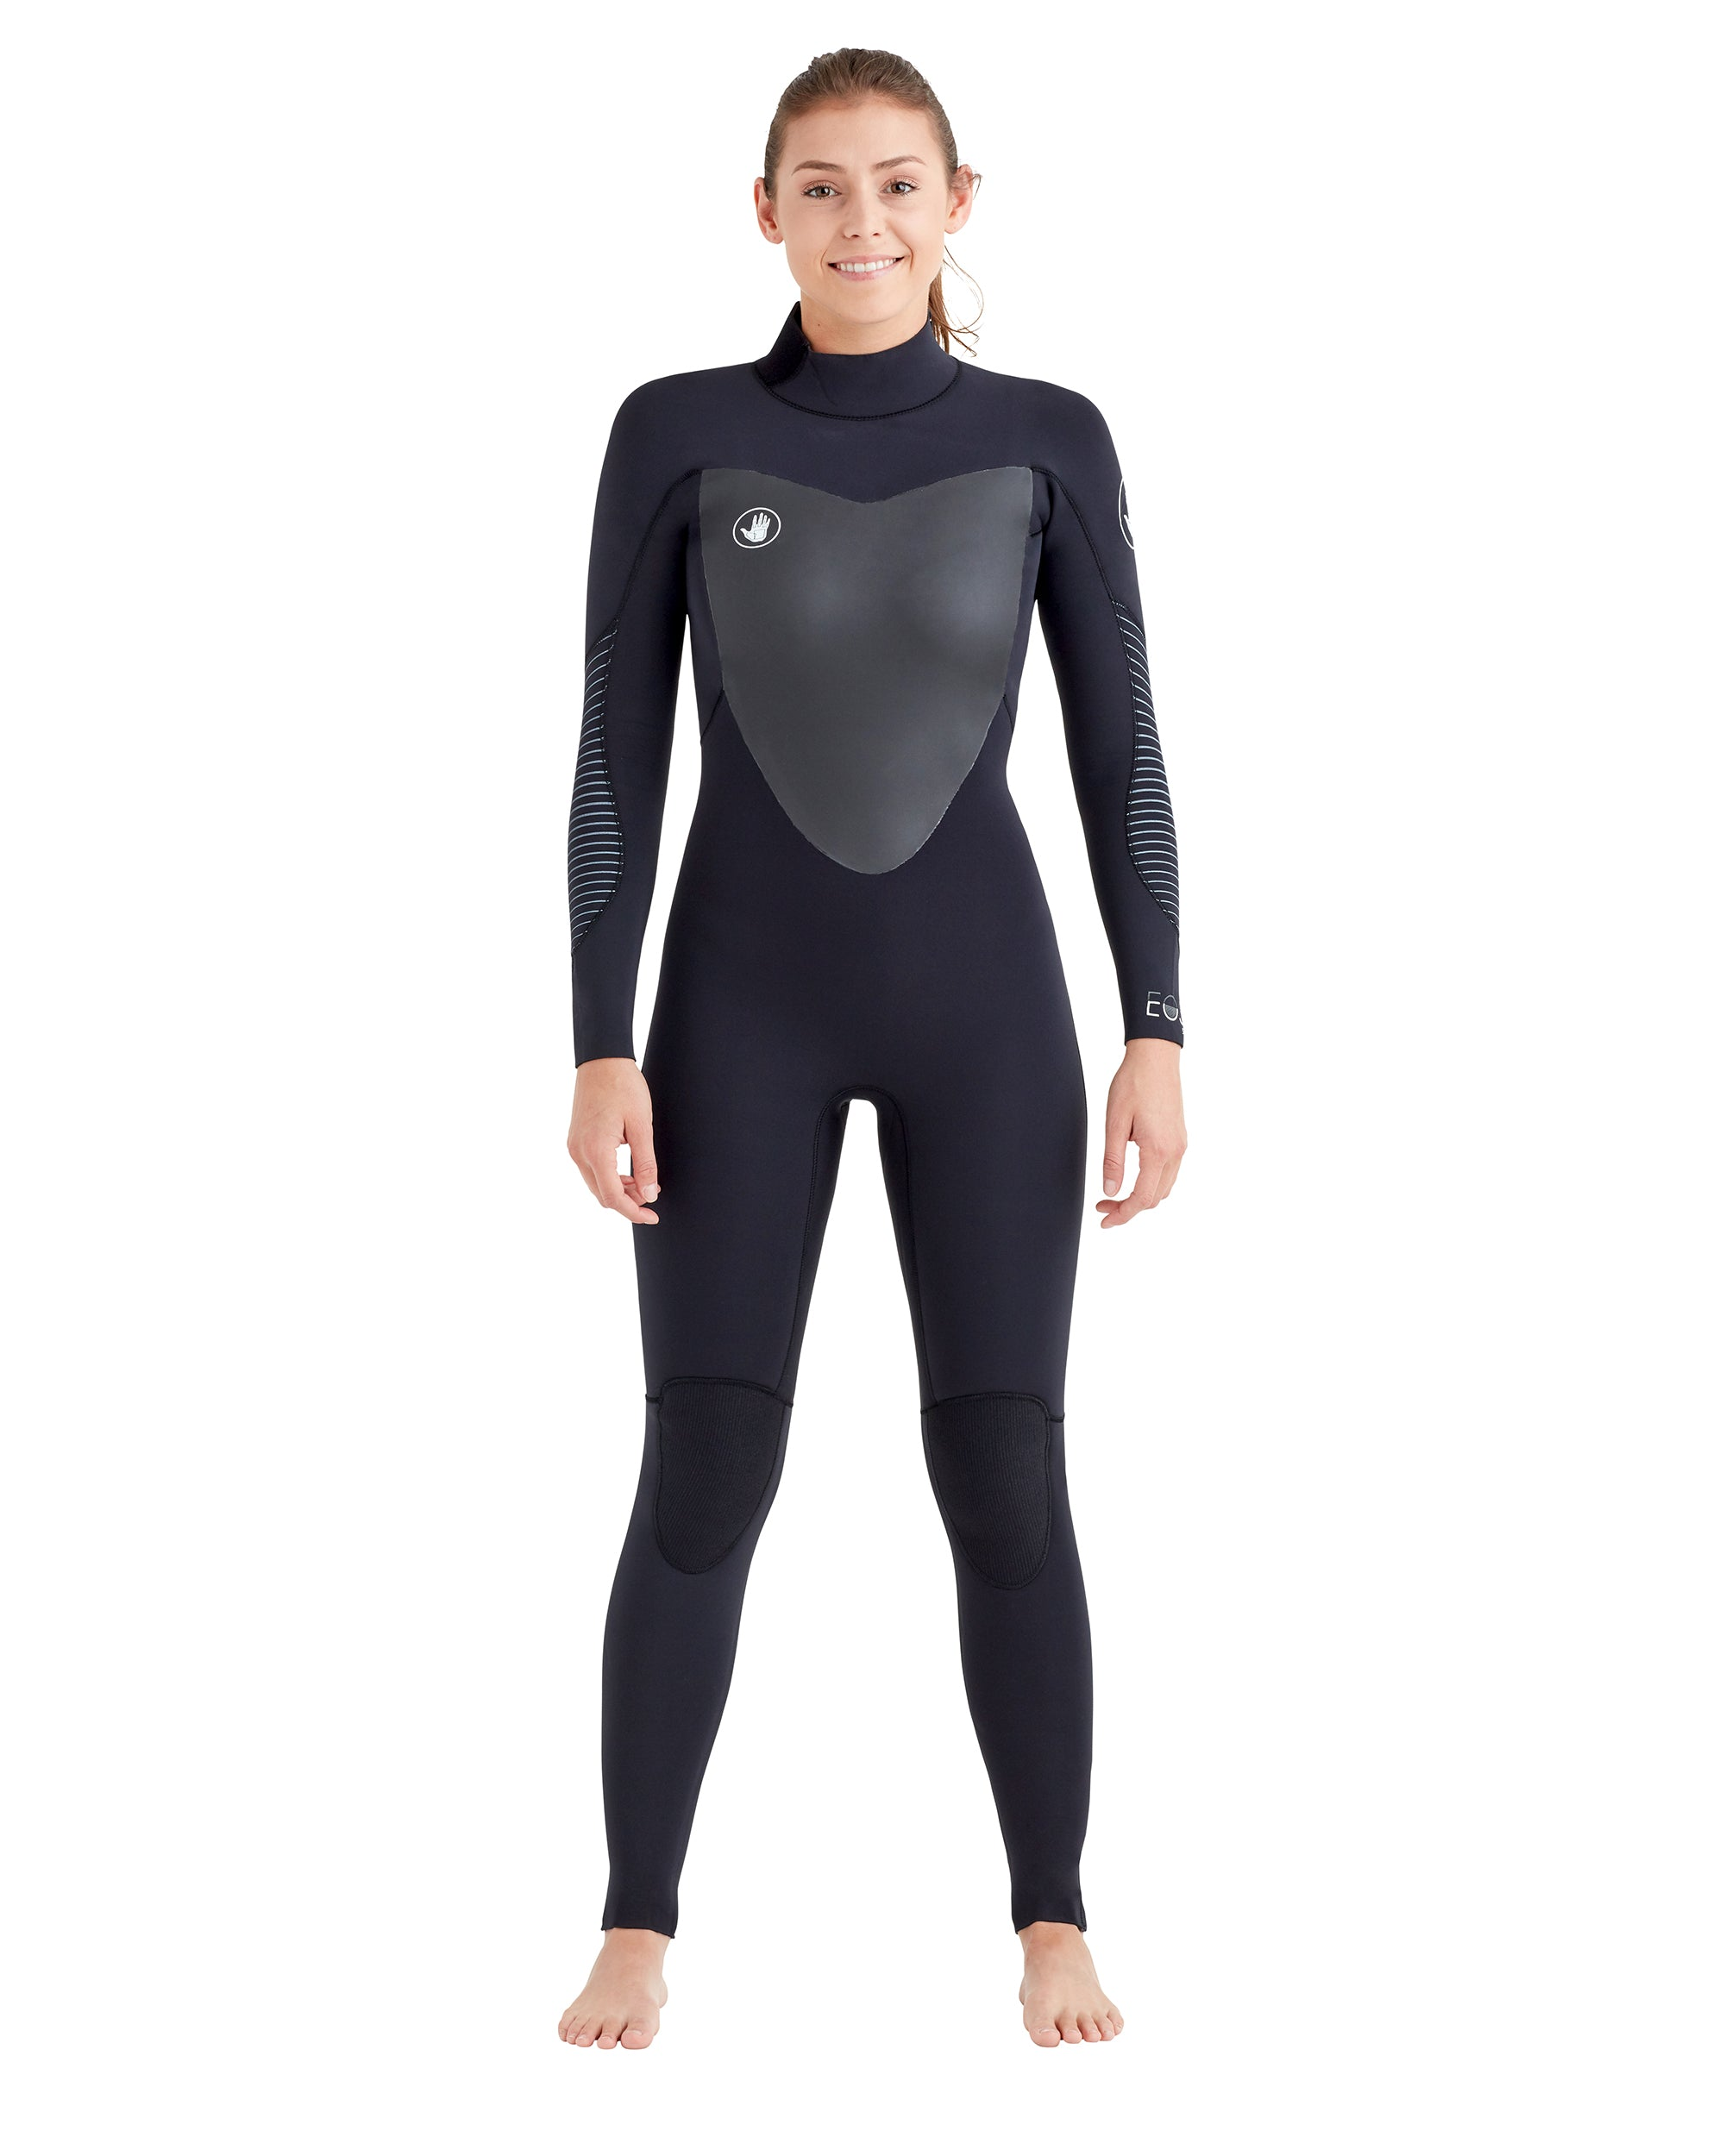 Women's Eos Back-Zip 3/2mm Women's Fullsuit - Black